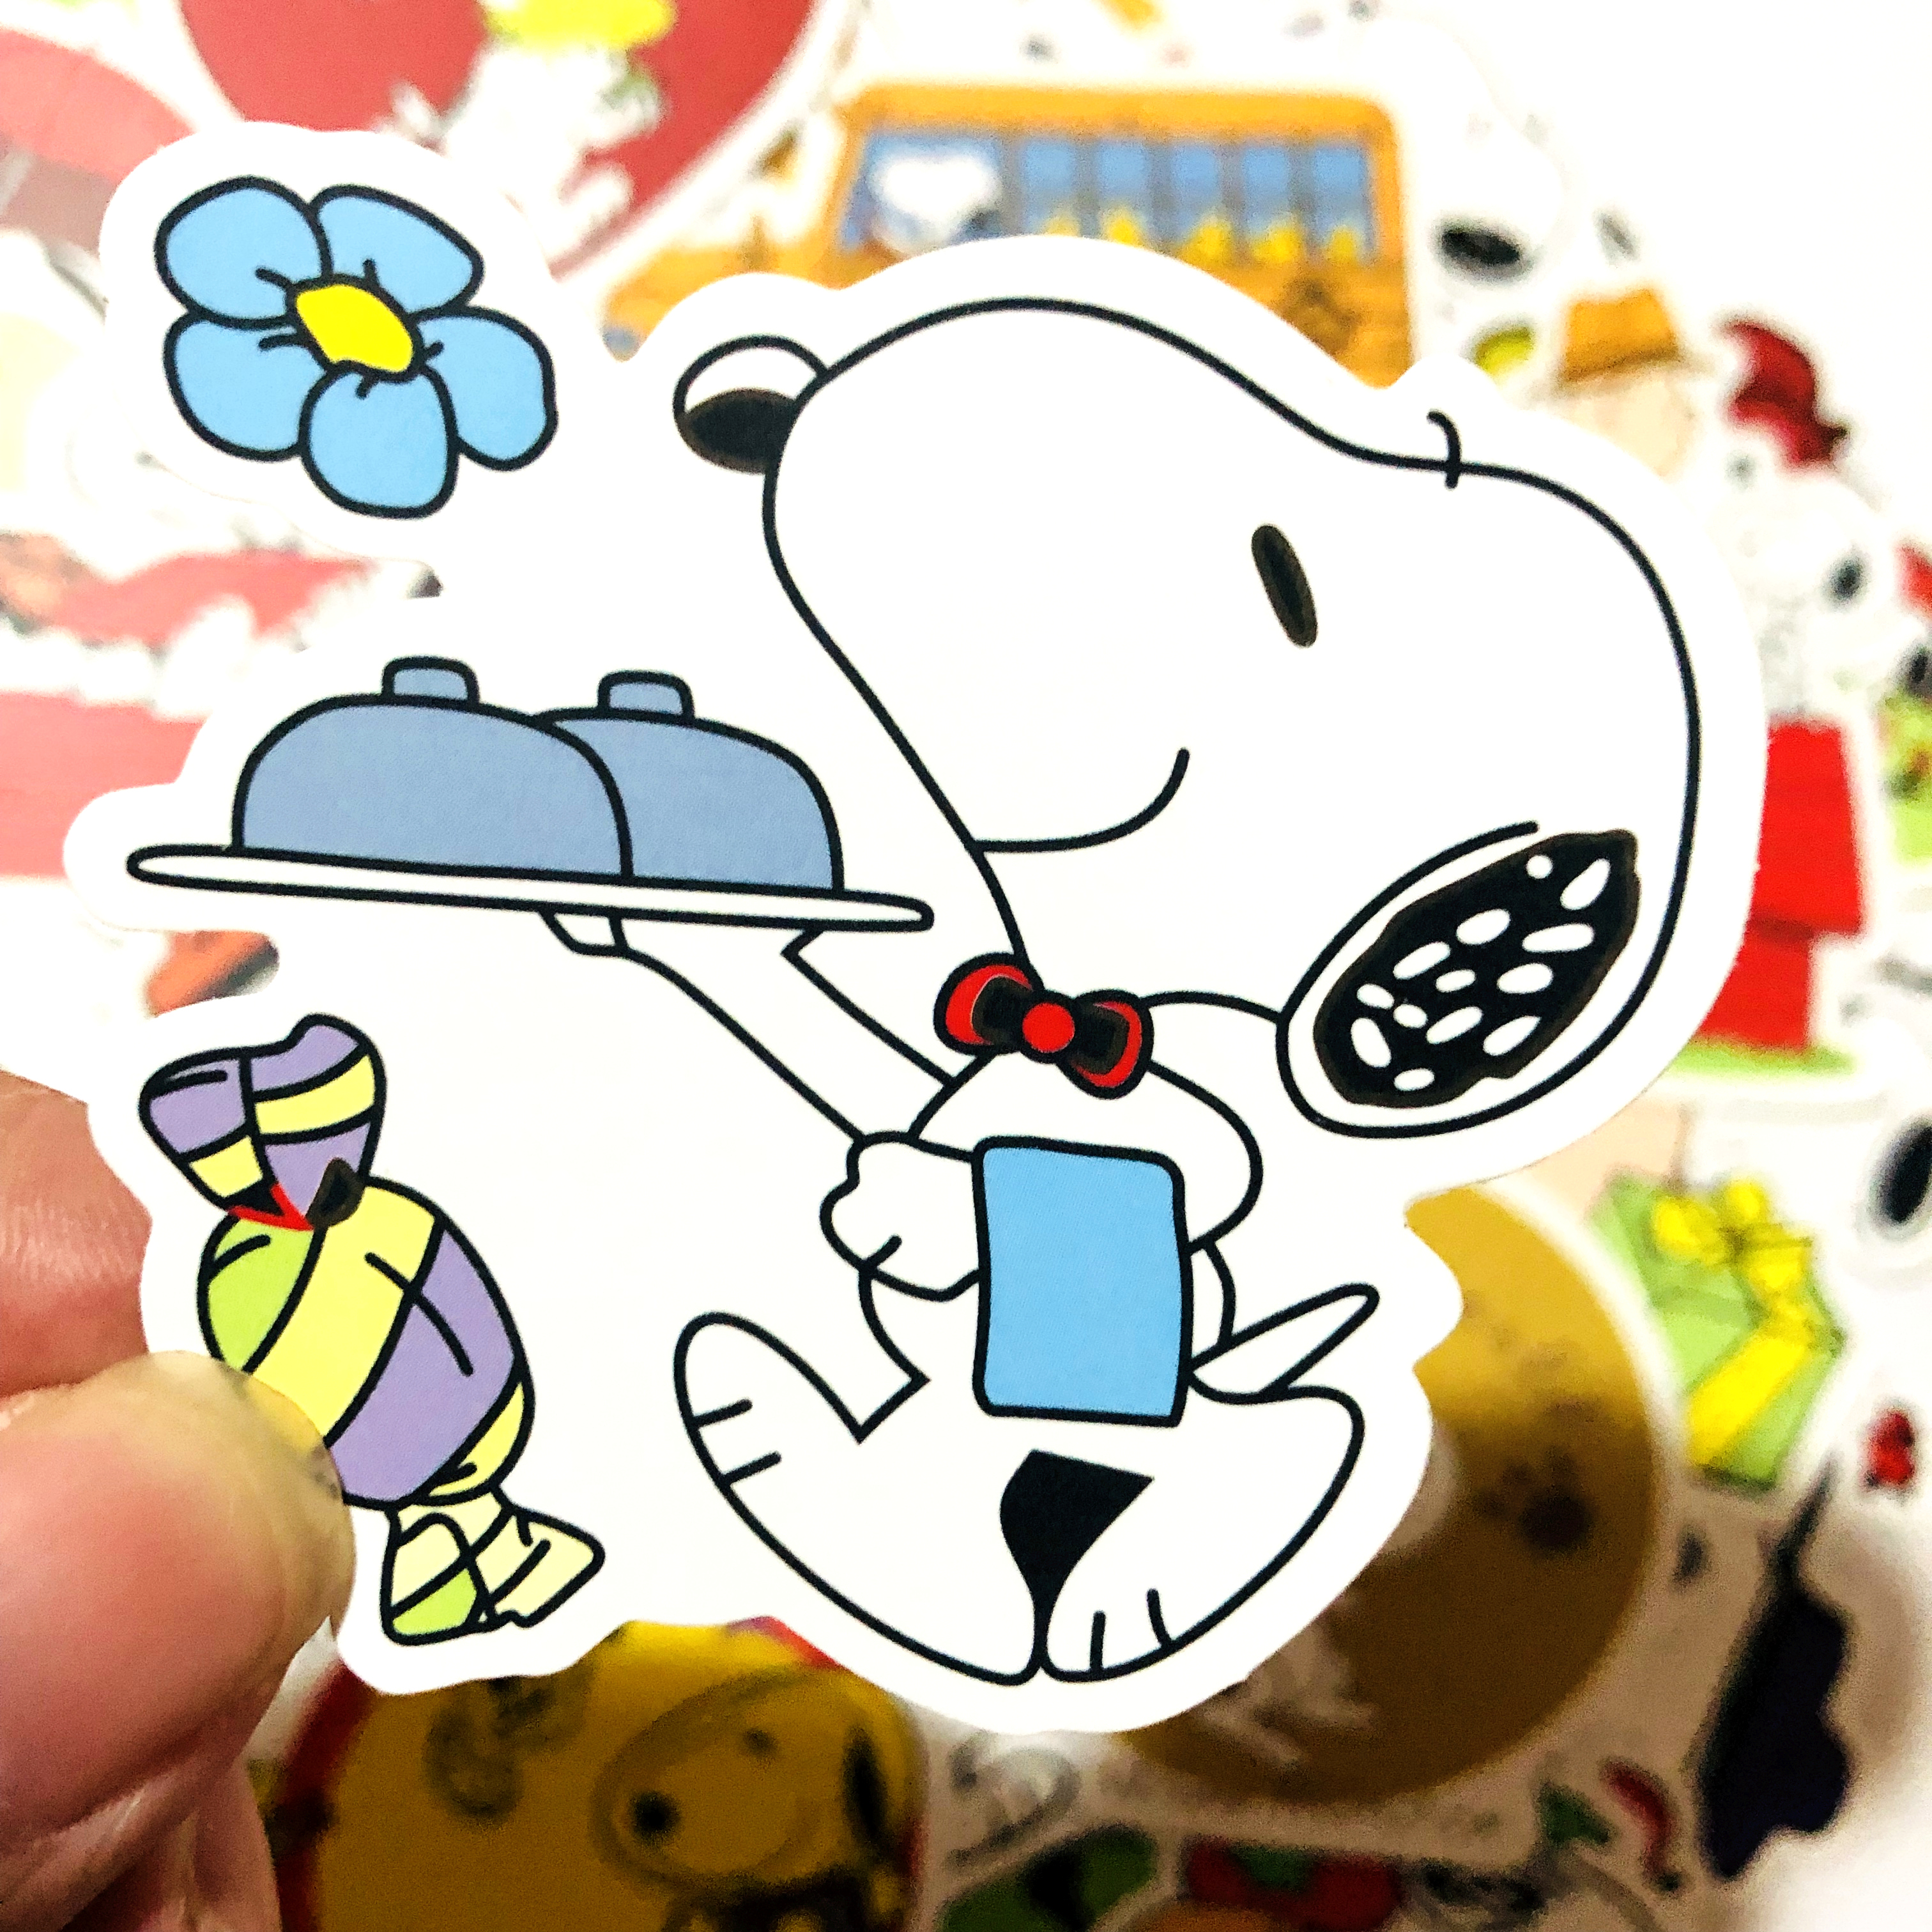 Image 3 - 50/100pcs cartoon Snoopy stickers For Laptop Skateboard Luggage Decal Office Toy Appliances netbook waterproof stickers-in Stickers from Toys & Hobbies